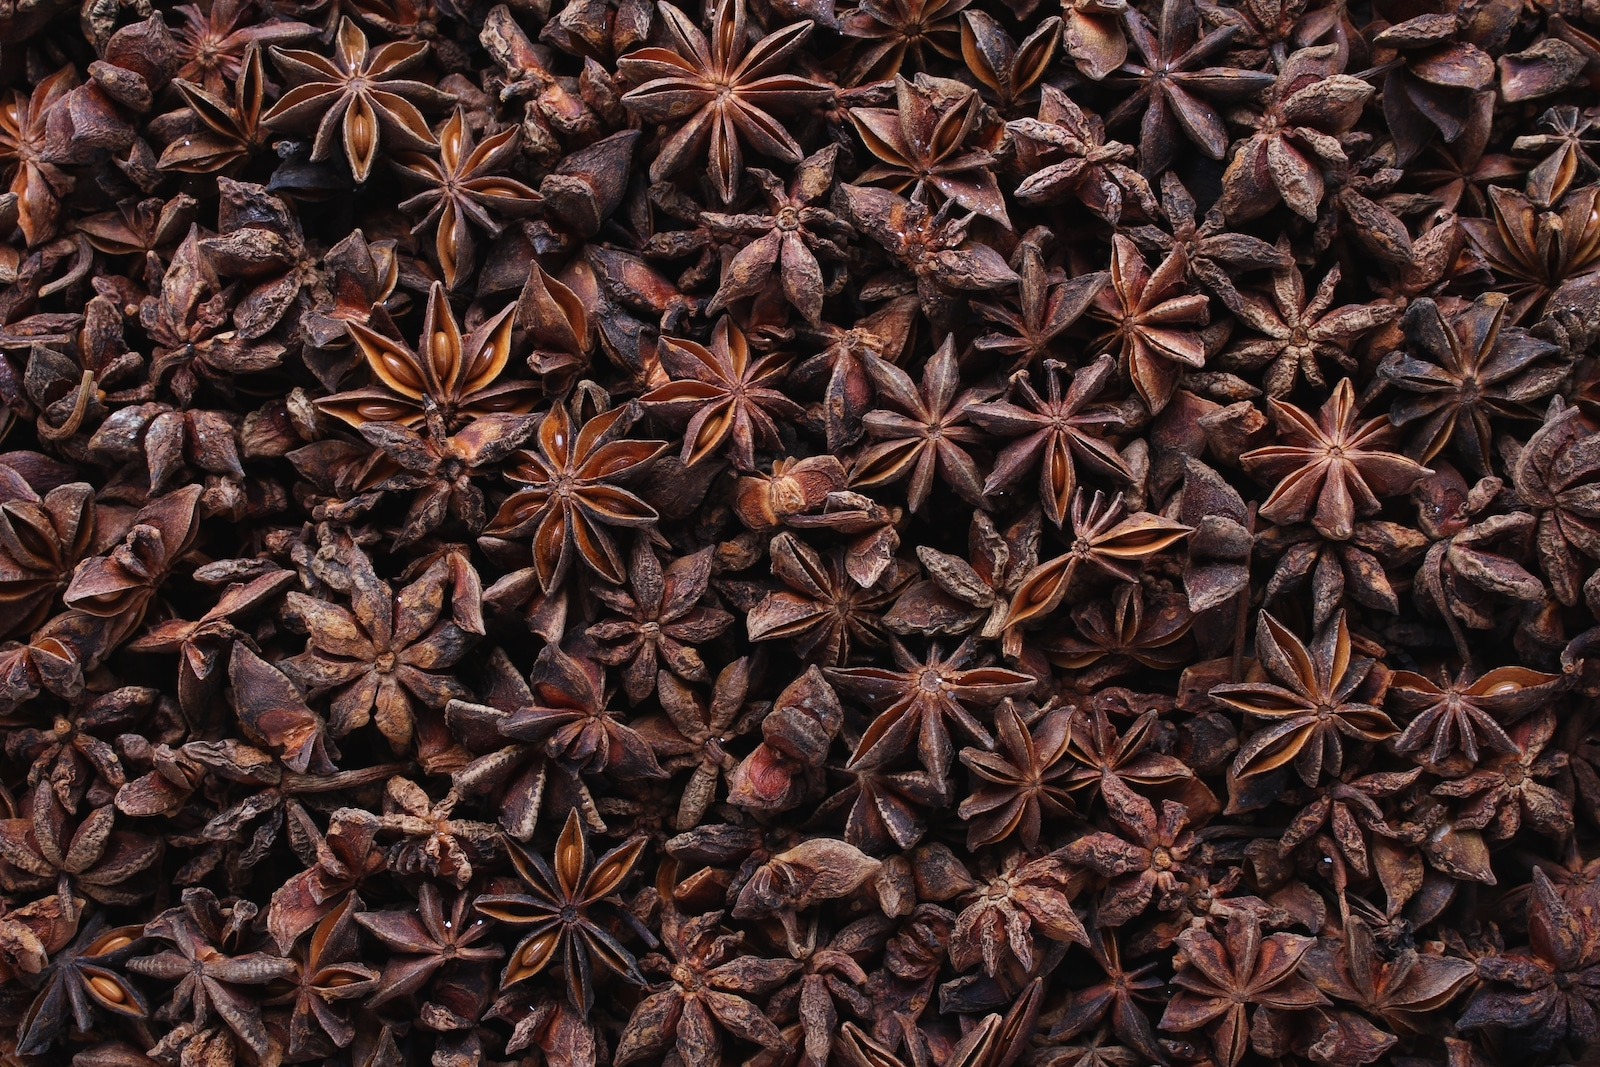 Star anise uses